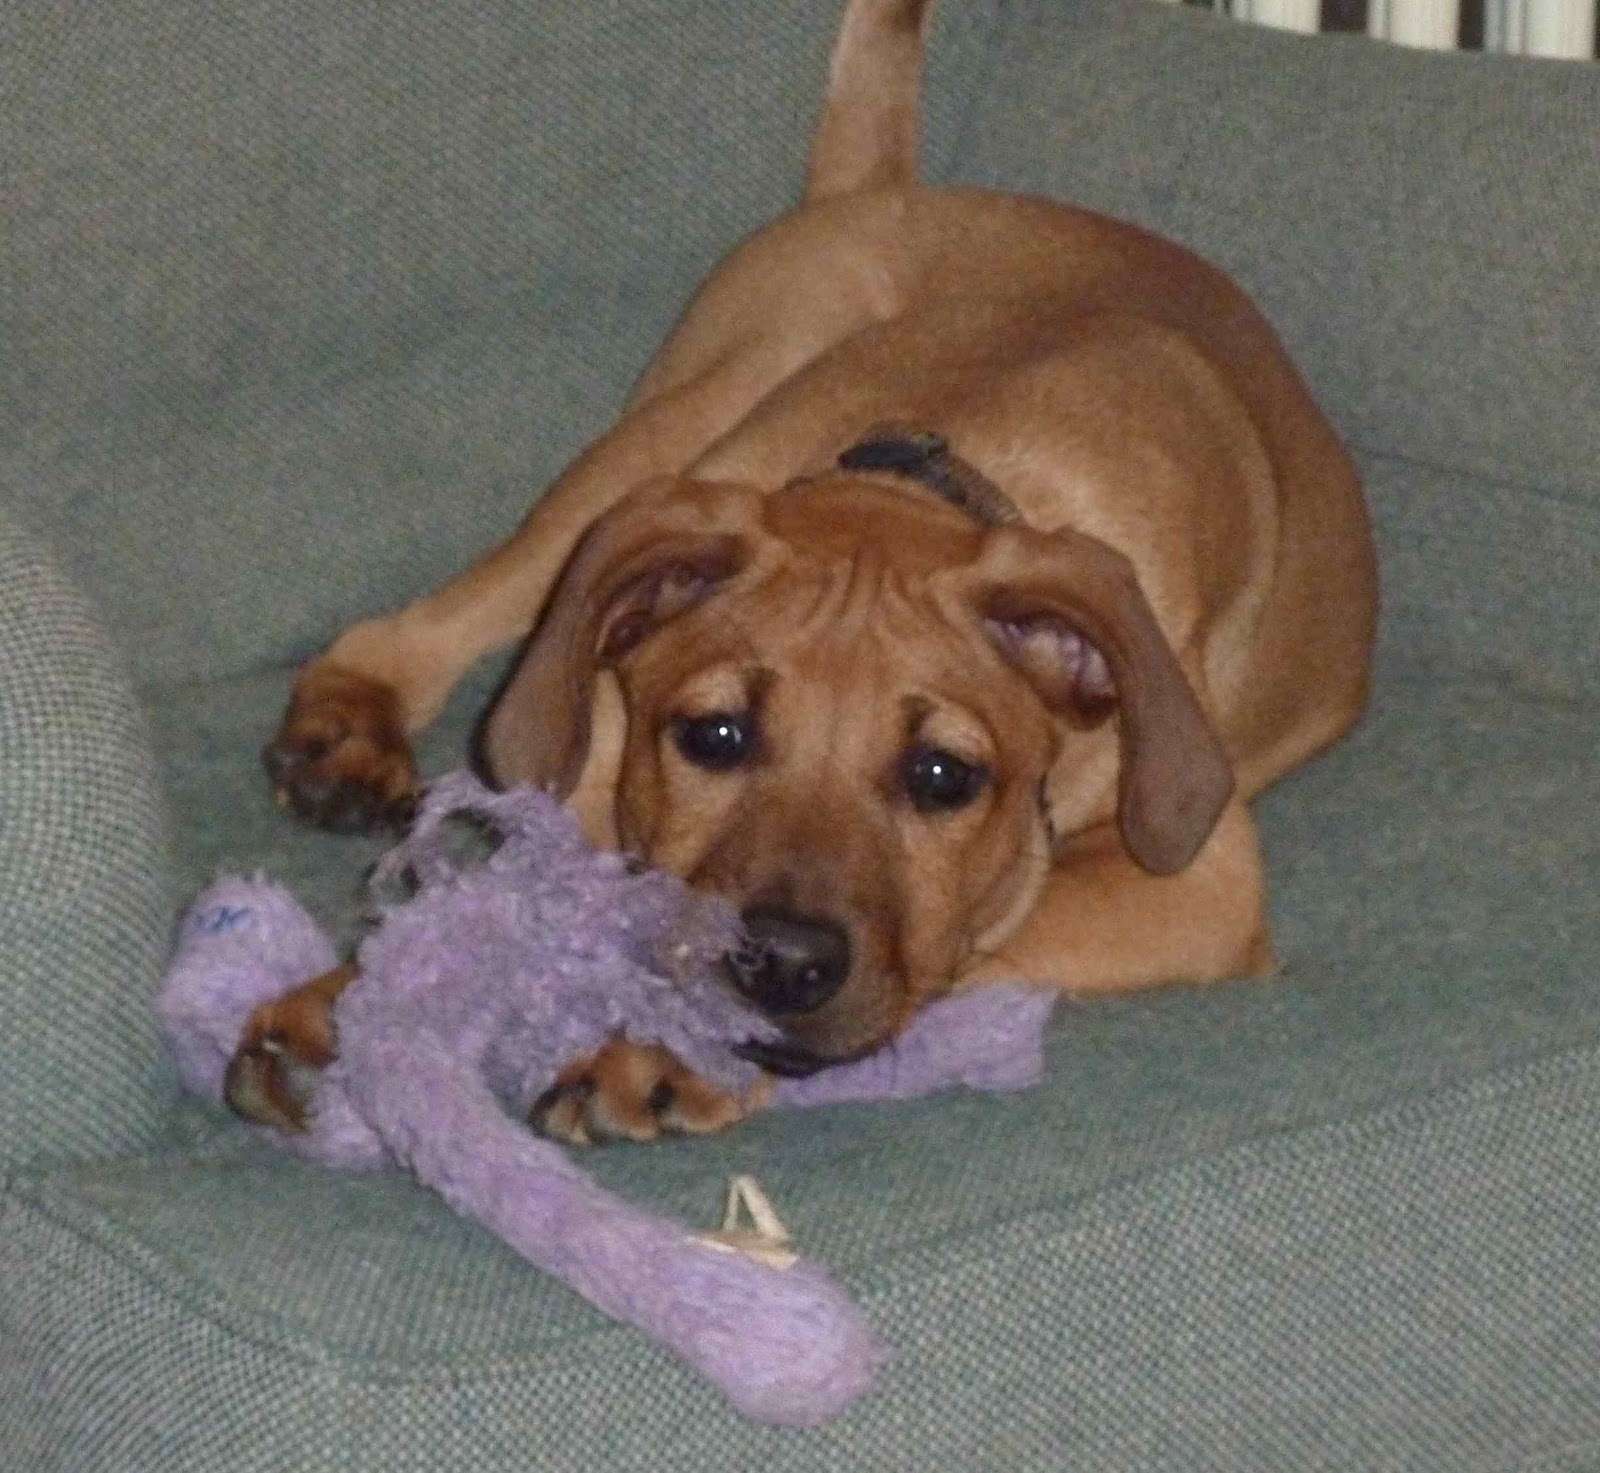 Maybe, just some Rhodesian Ridgeback in the mix?